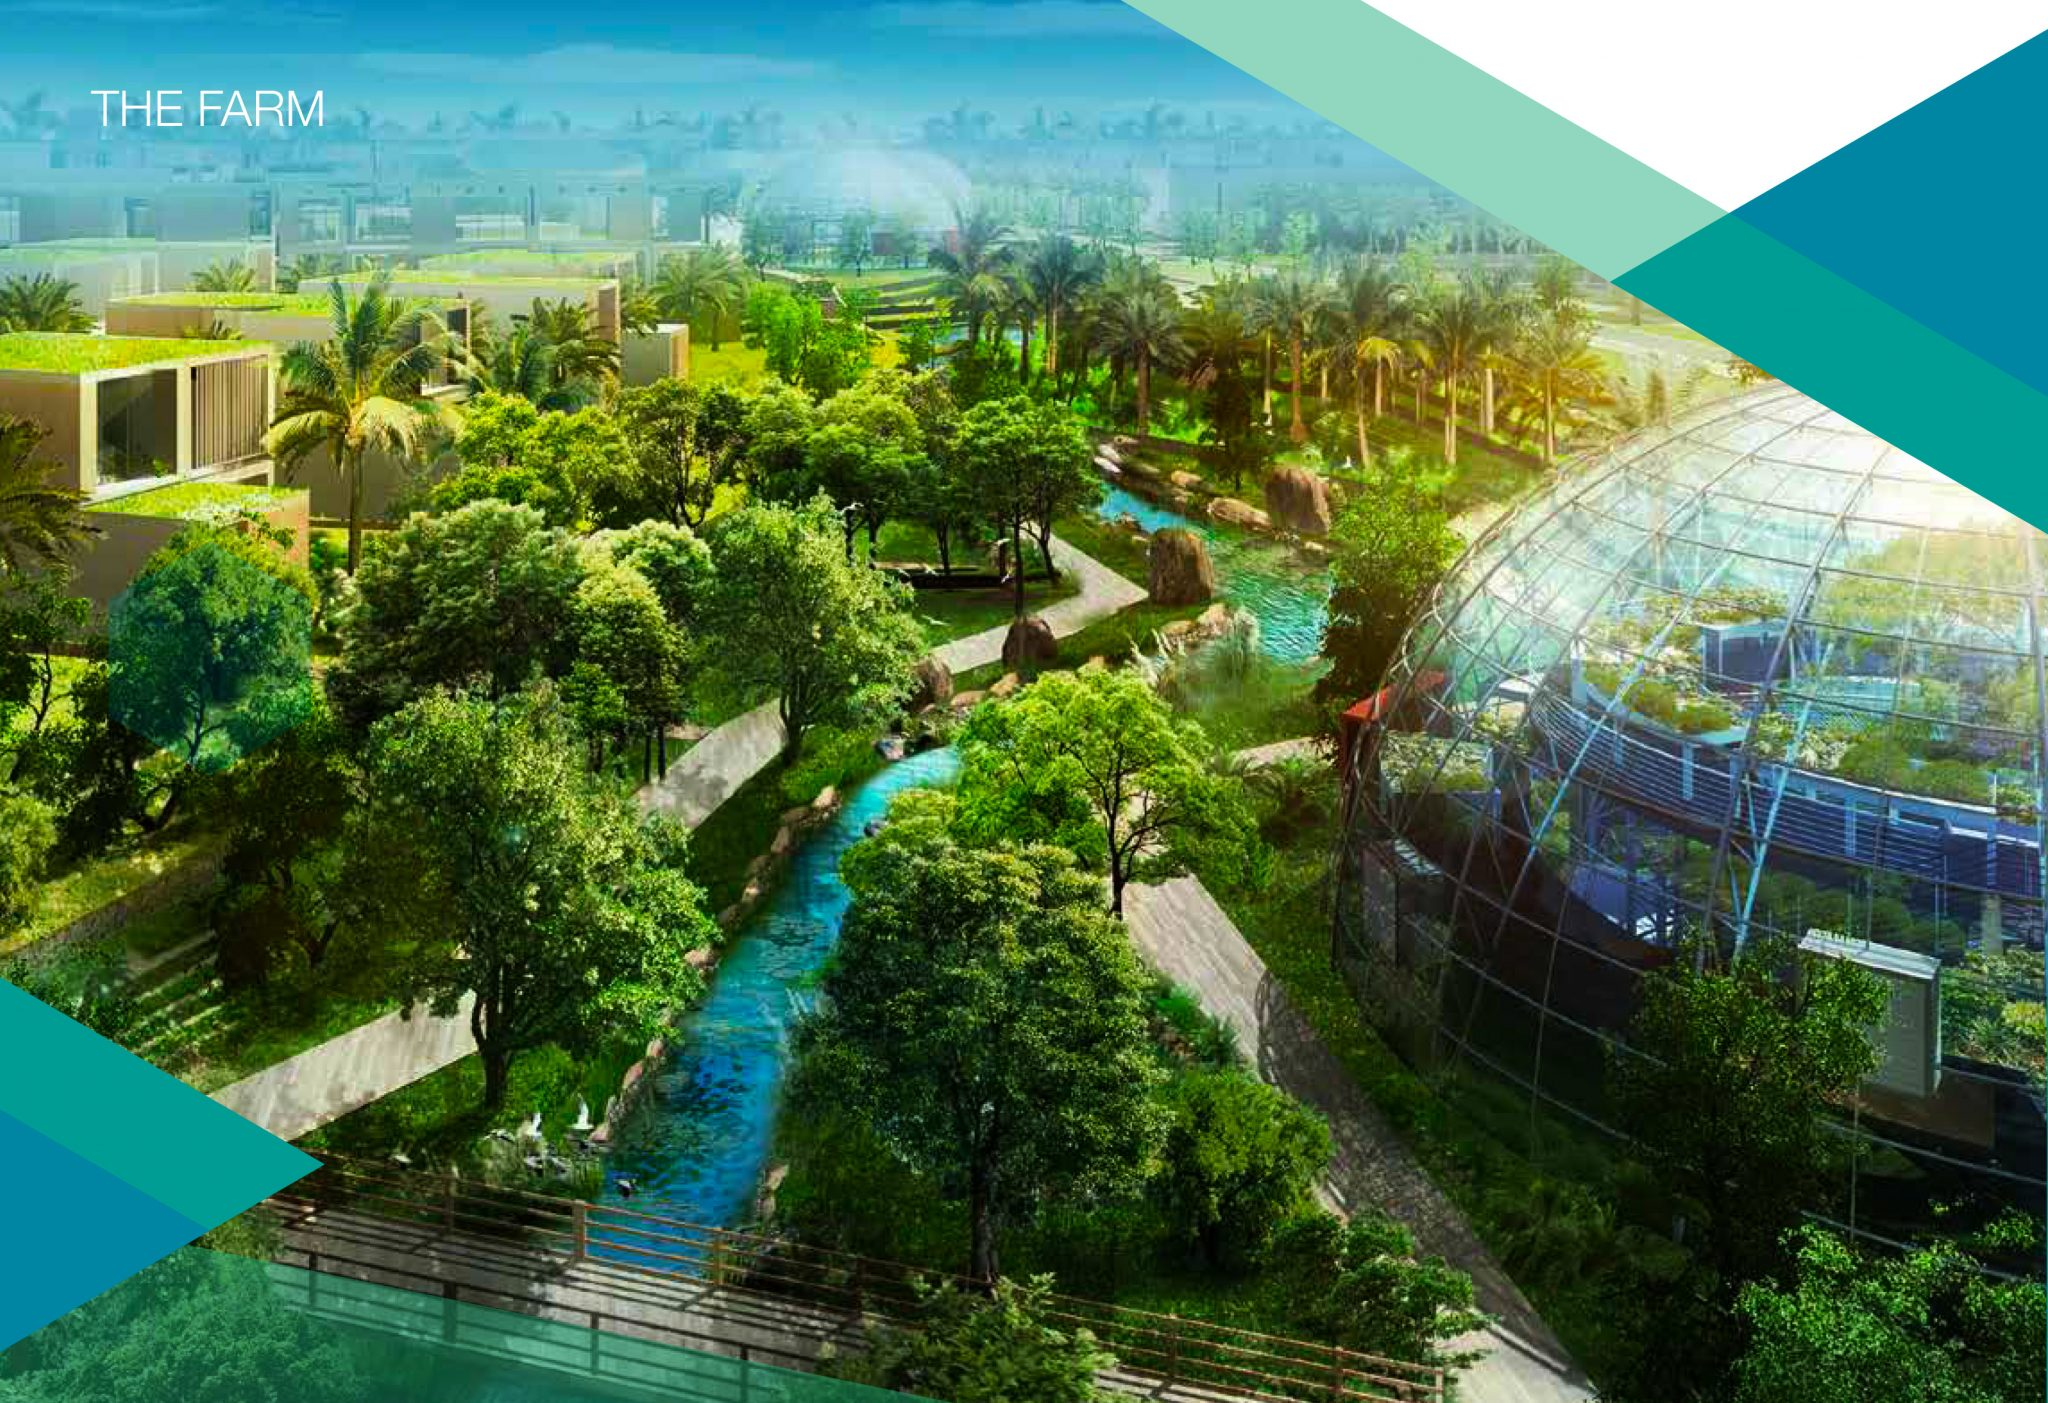 The Farm, including its Biodome, within Sustainable City that is easily accessible to children at the Fairgreen School Dubai